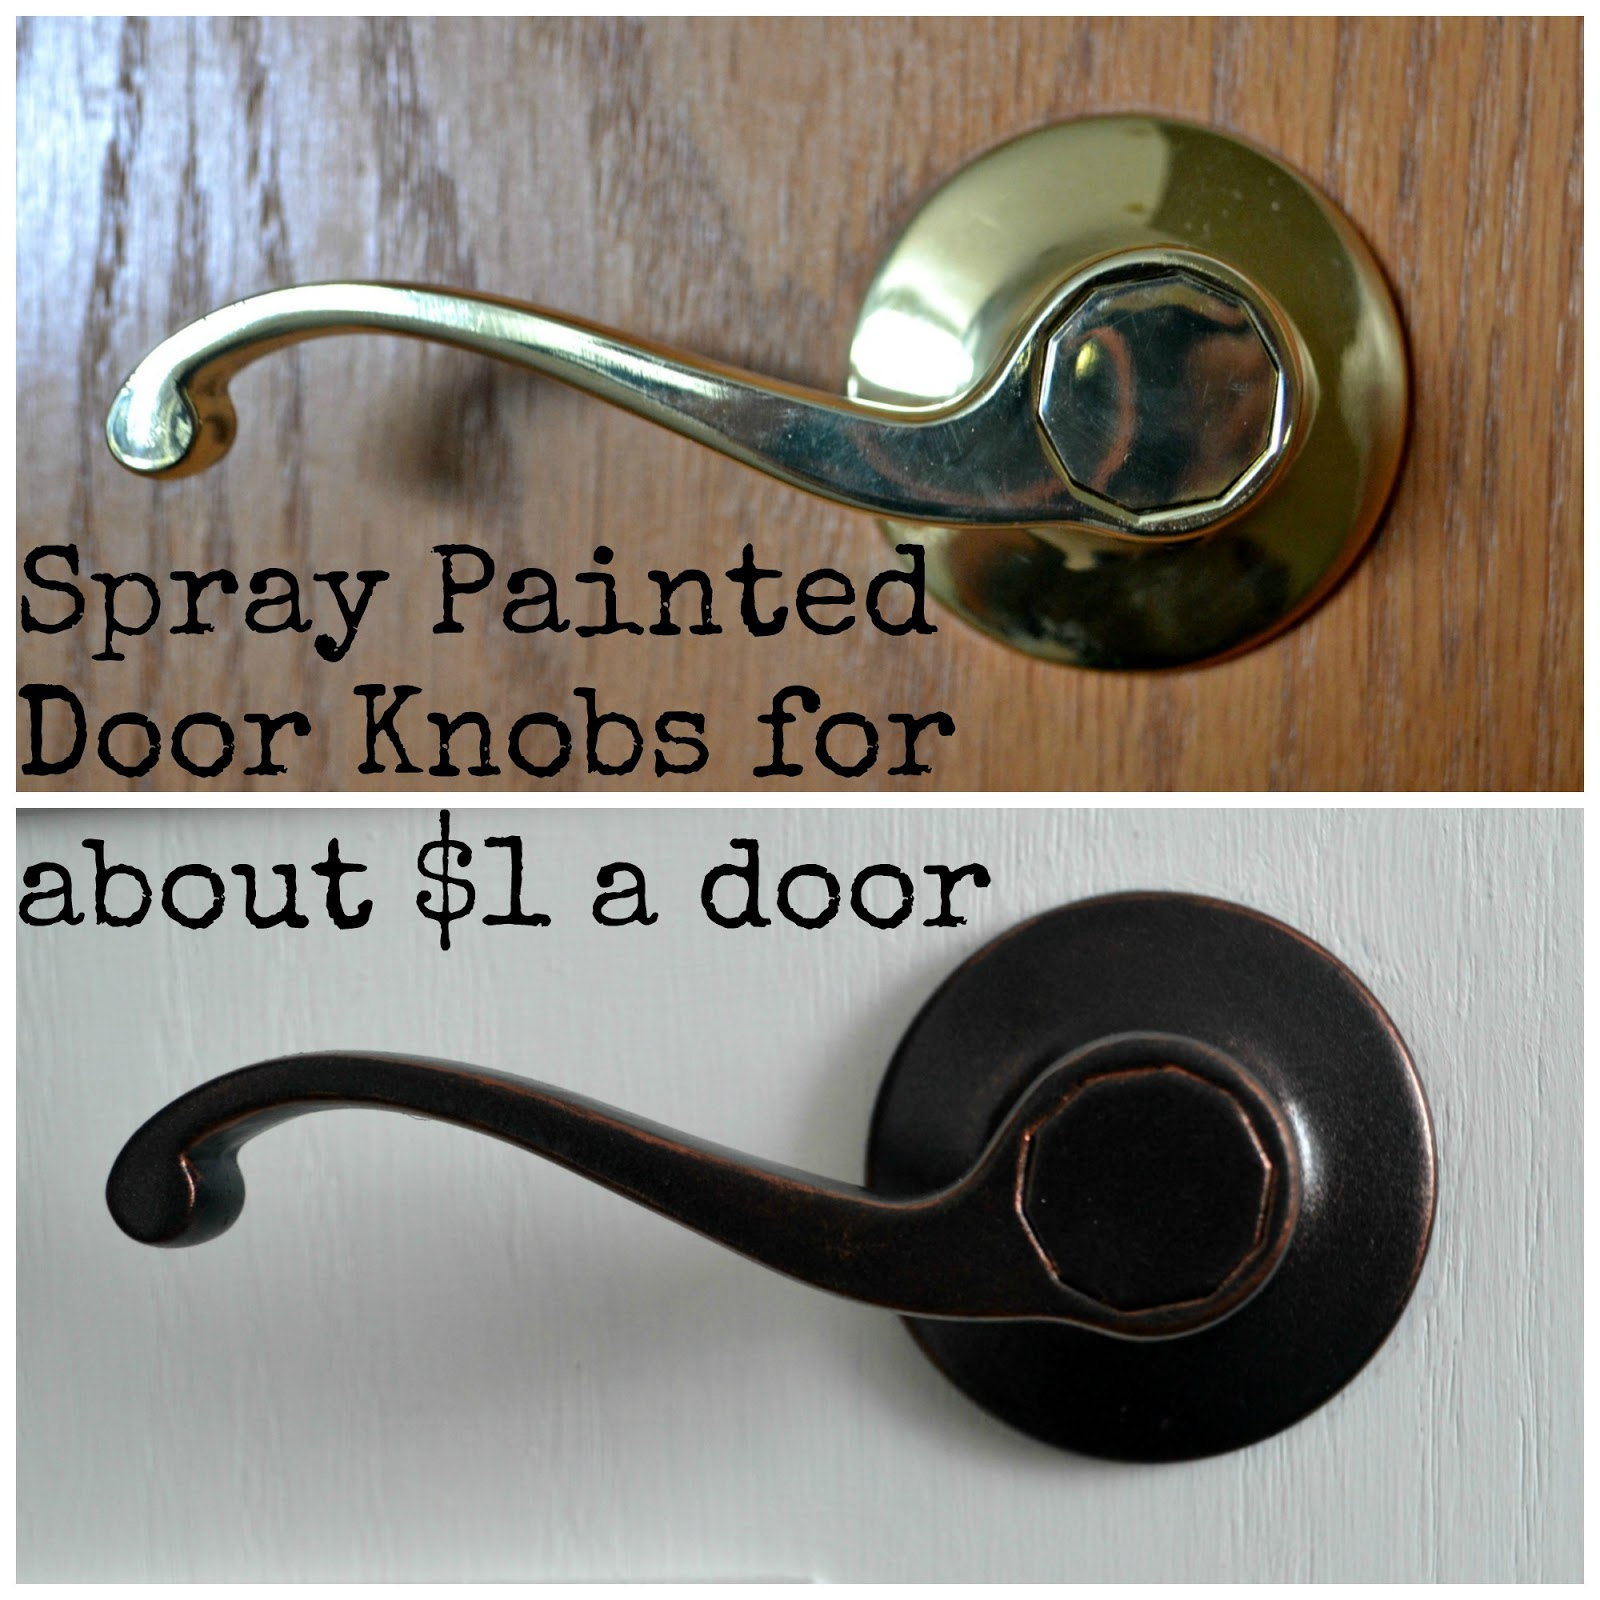 Attirant DIY Spray Painted Doorknobs: From Cheap Brass To Expensive Oil Rubbed Bronze